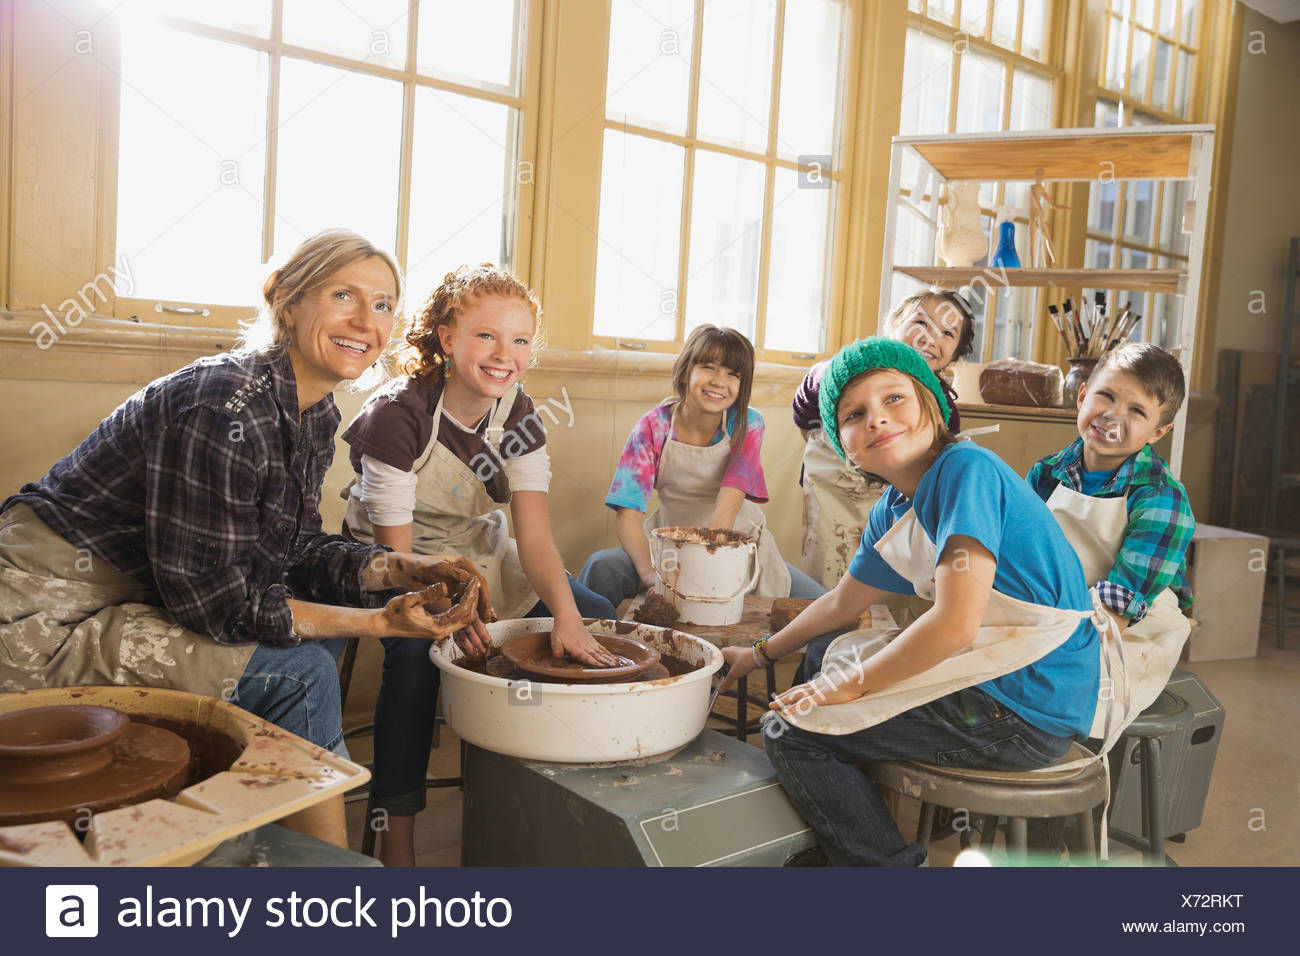 Teacher and students in pottery class - Stock Image